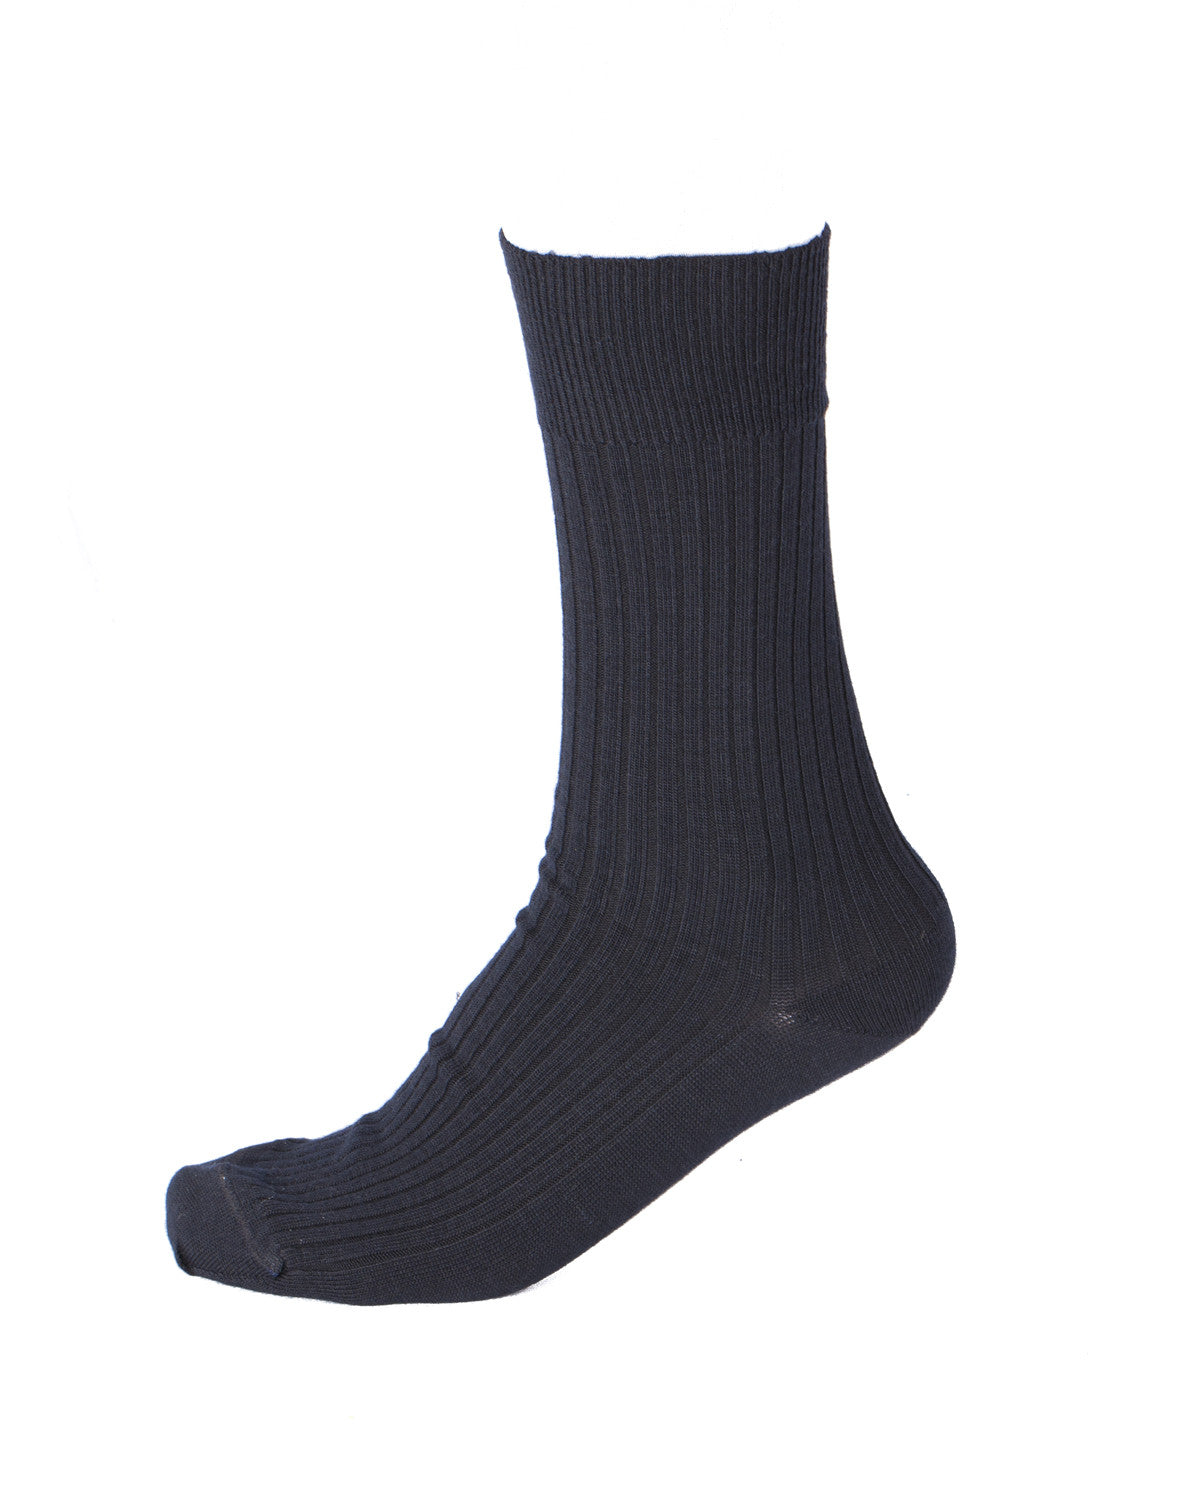 Pussyfoot Wool Non-Elastic Health Socks - Navy